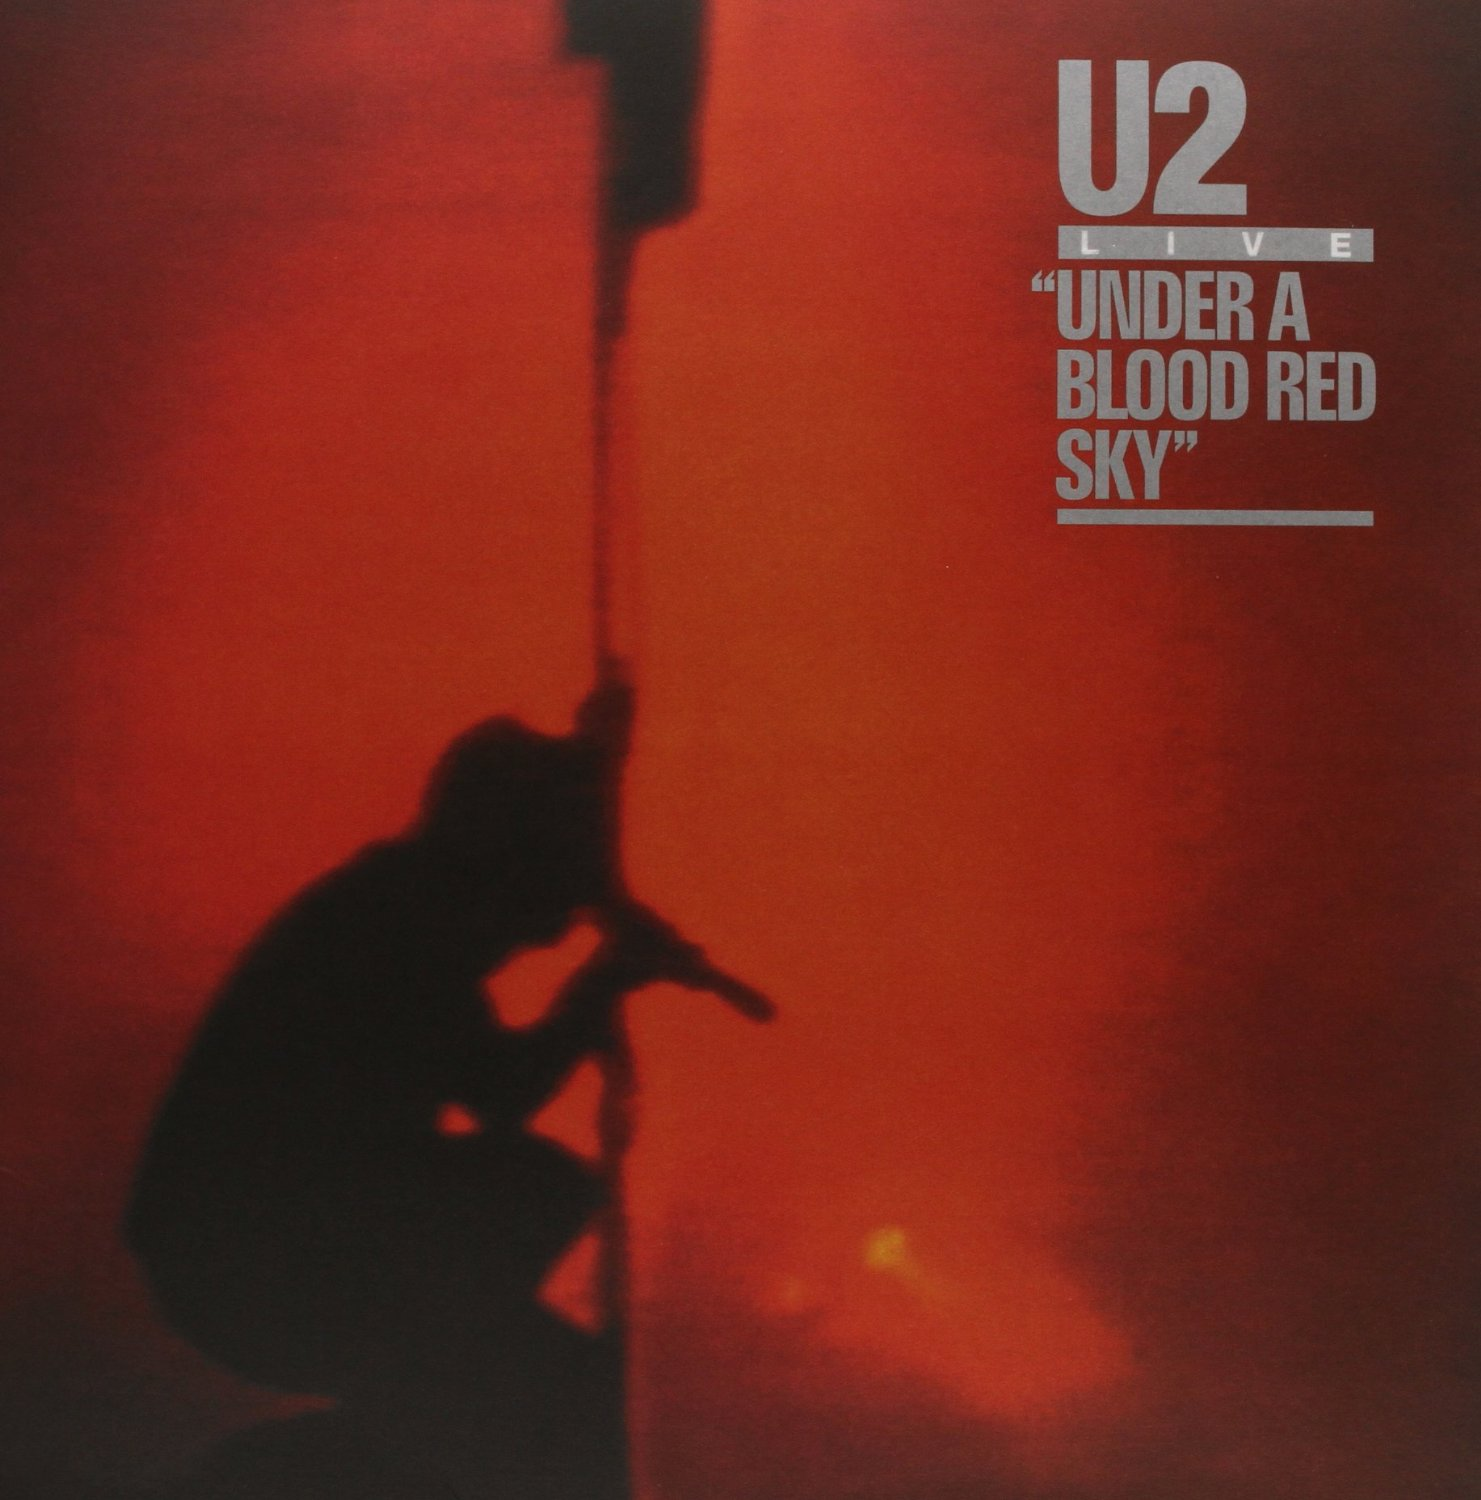 Under A Blood Red Sky Lp Vinile U2 Vendita Vinili